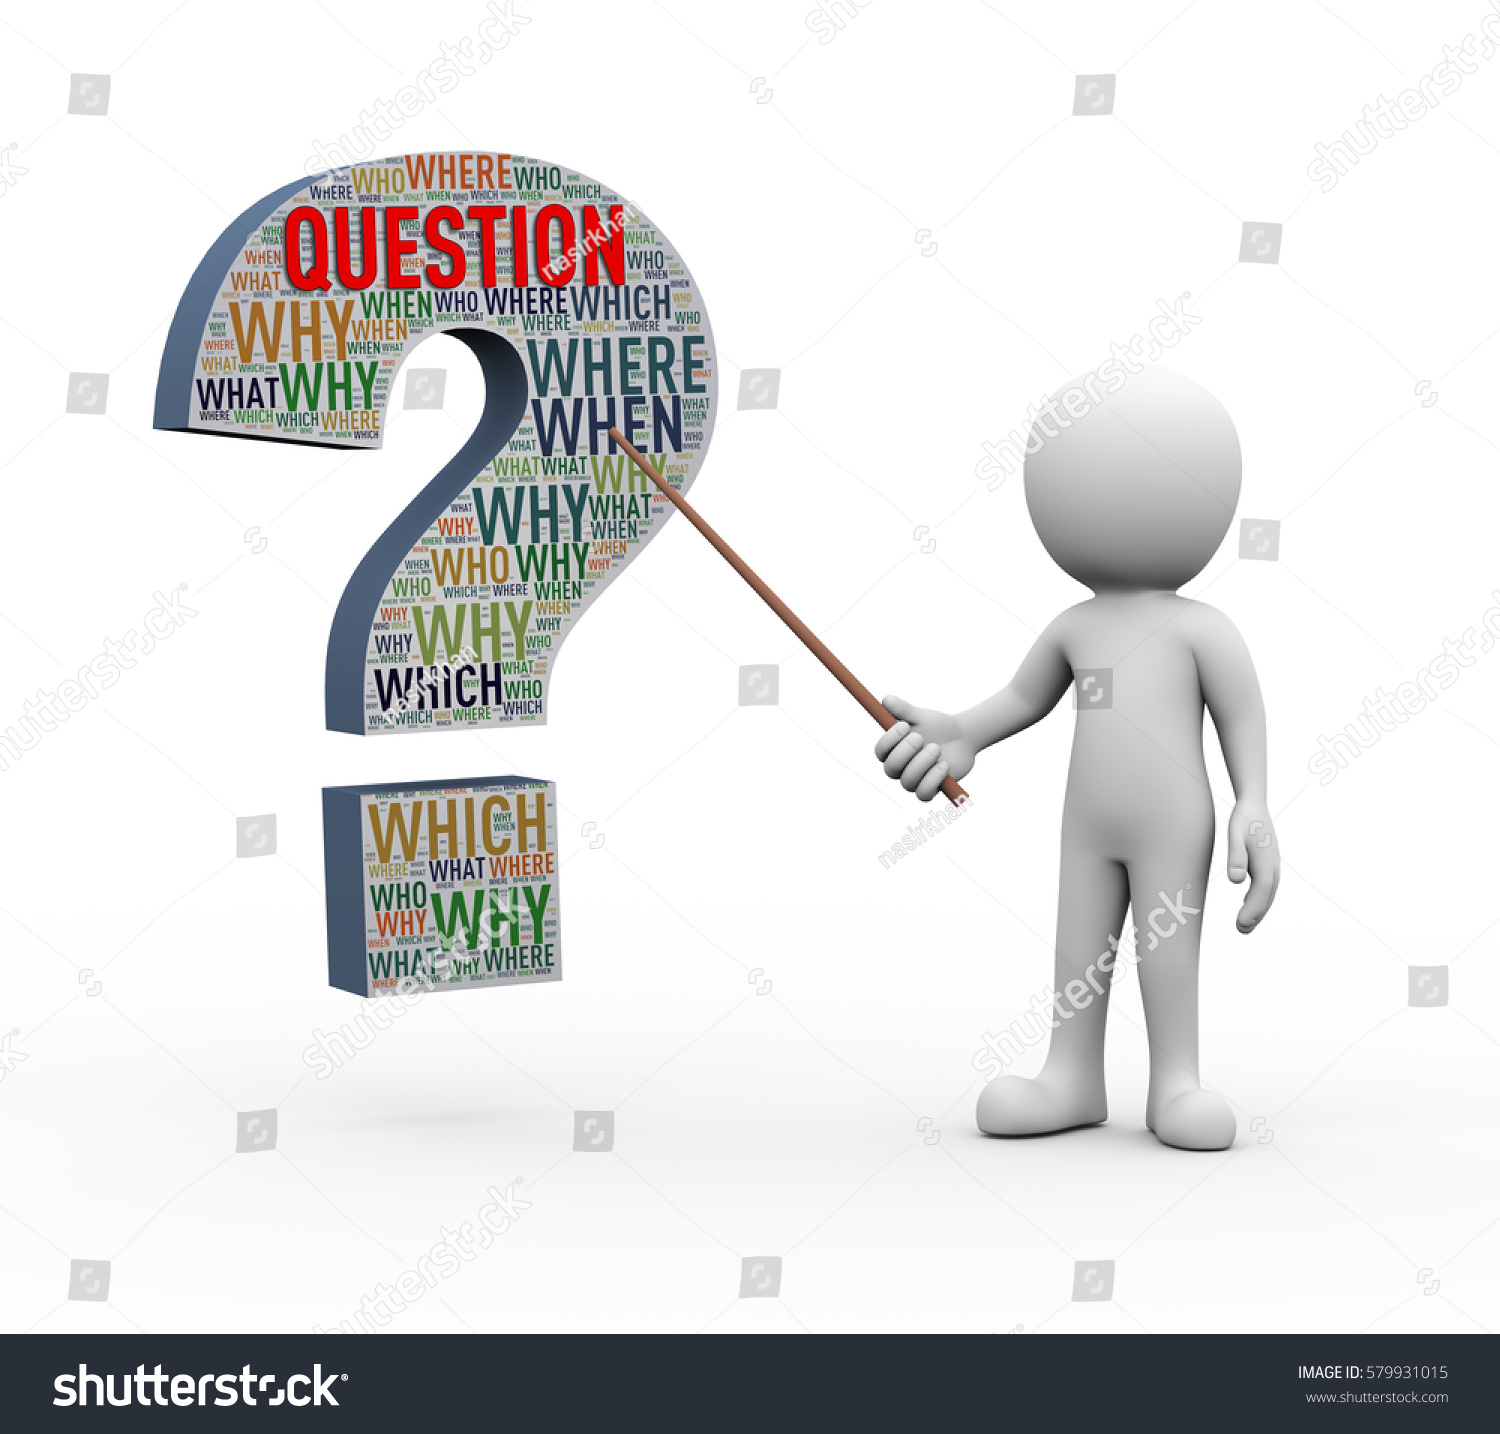 3d person with magnifying glass and question mark stock images image - 3d Rendering Of Explaining Man Pointing With Stick Presentation Of Question Mark Sign Symbol Shape Wordcloud